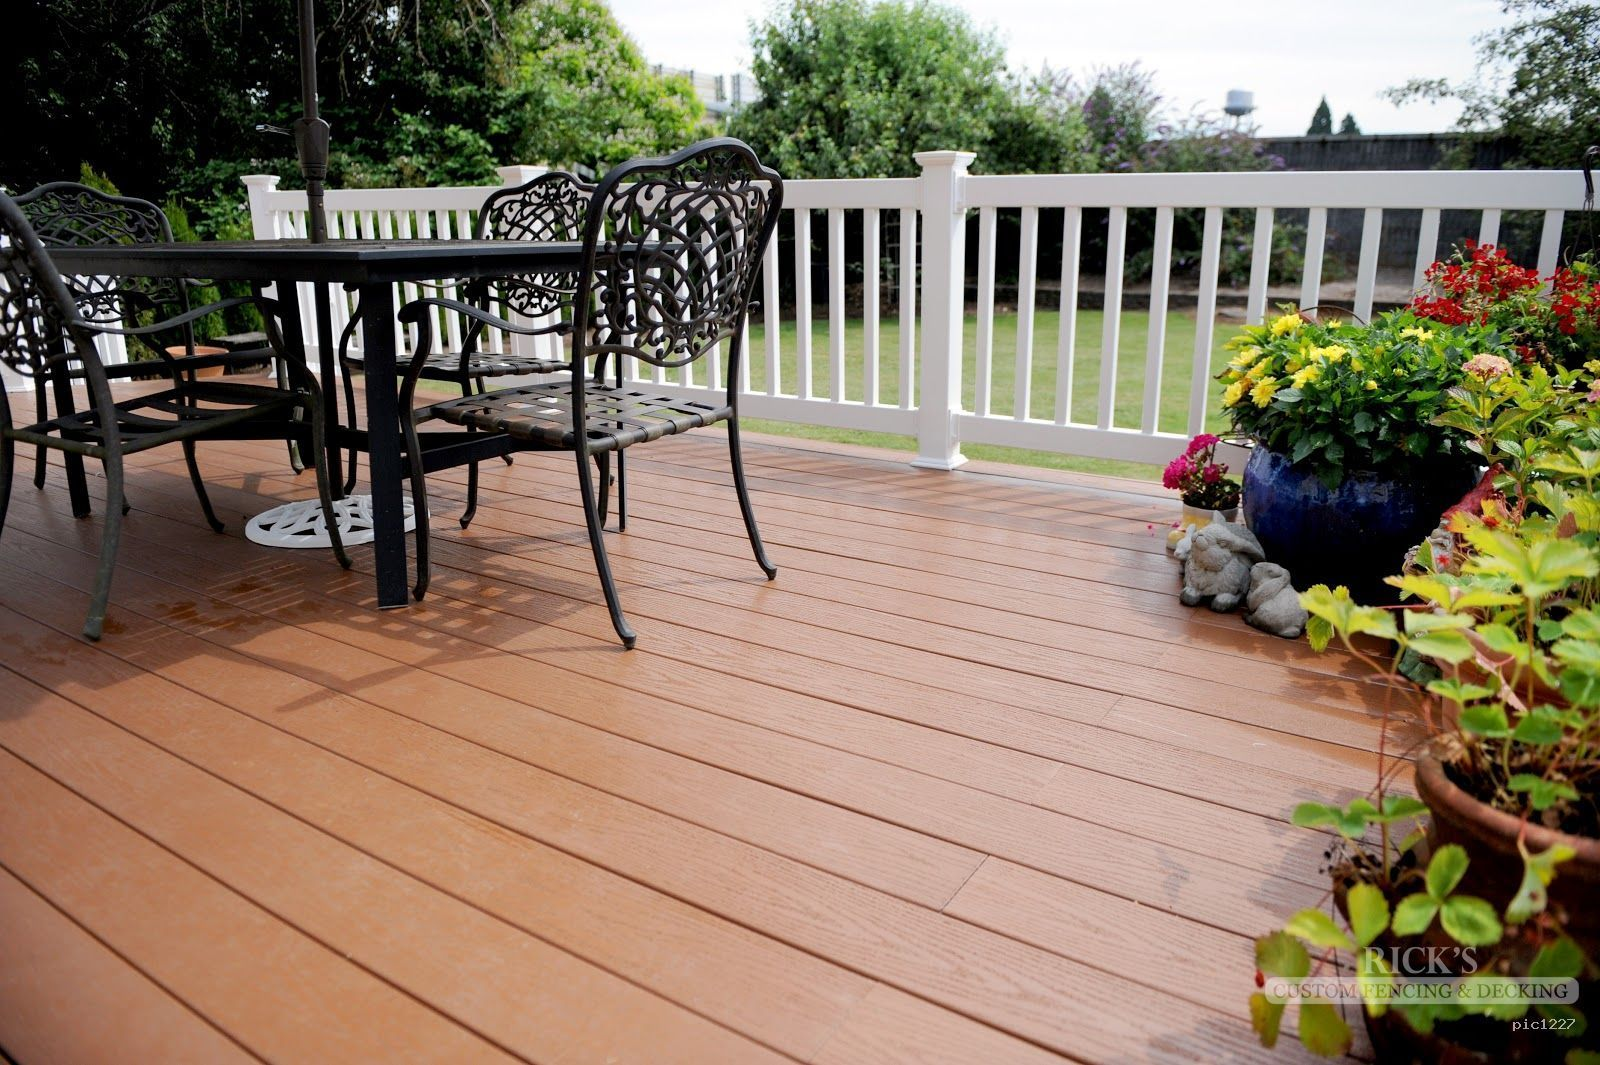 Synthetic Decking For Boats Australia Use Sleepers As A Decking Base Renovation Balcony Decking Singapore With Images Deck Paint Outdoor Flooring Deck